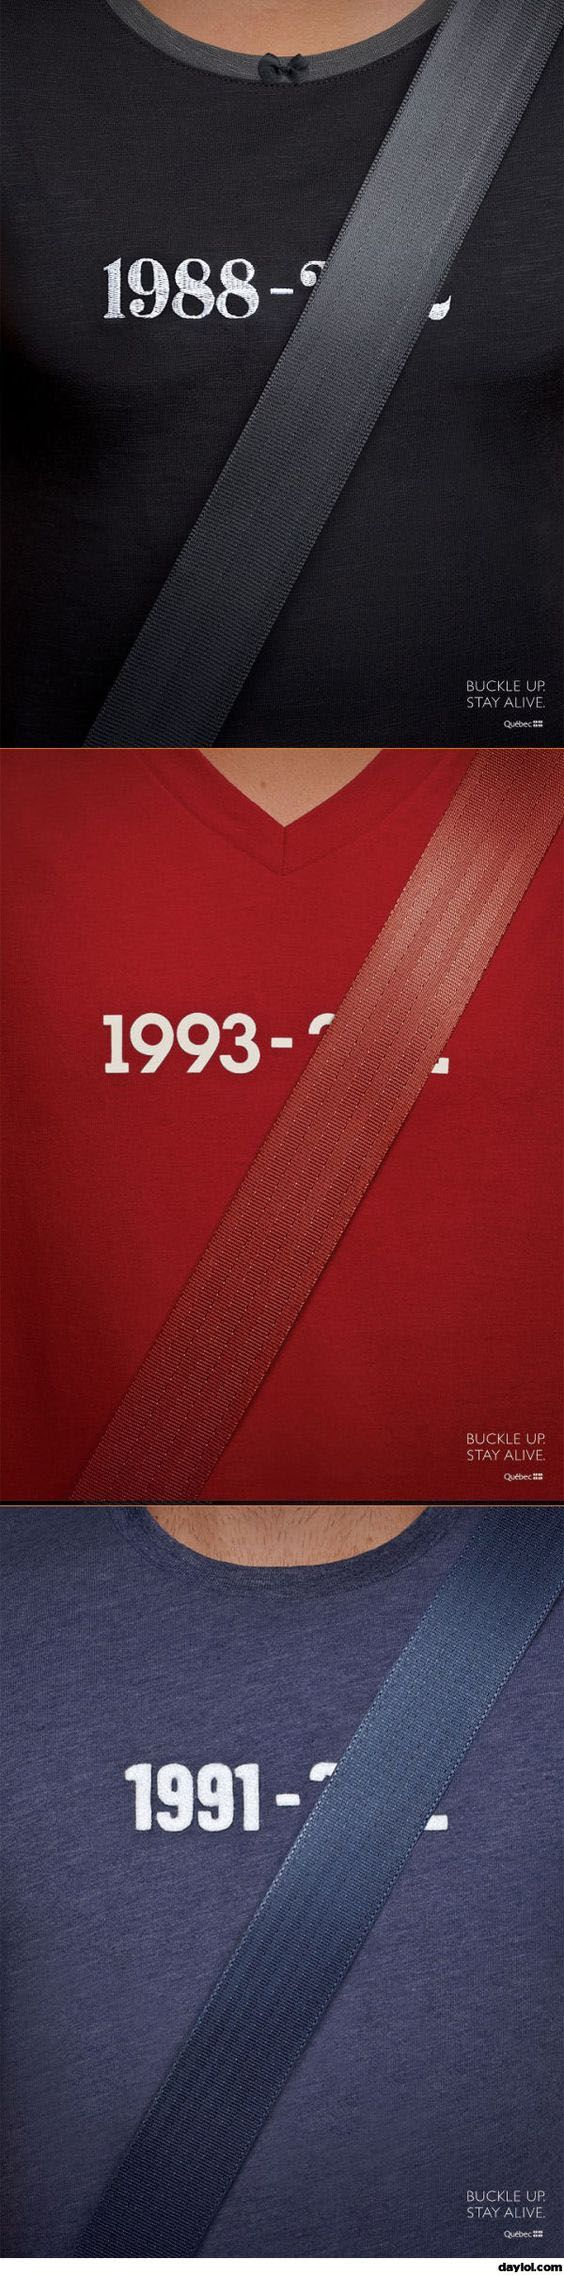 Buckle up and stay alive ad campaign.